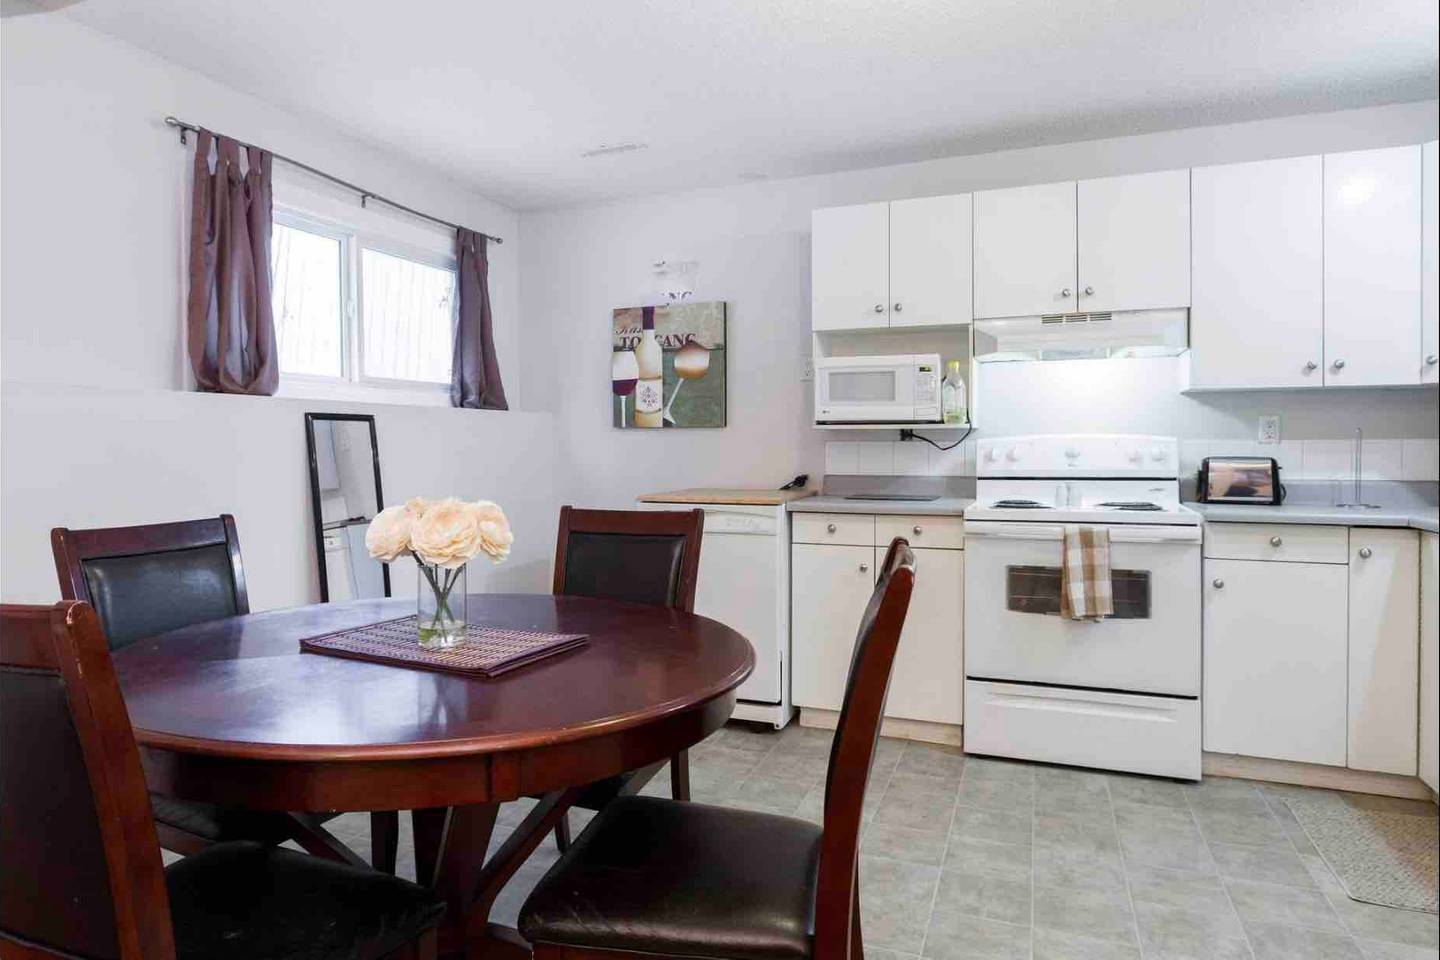 Apartment 2 BEDROOM BASEMENT SUITE  WALK TO WEST ED   MORE  photo 18790390